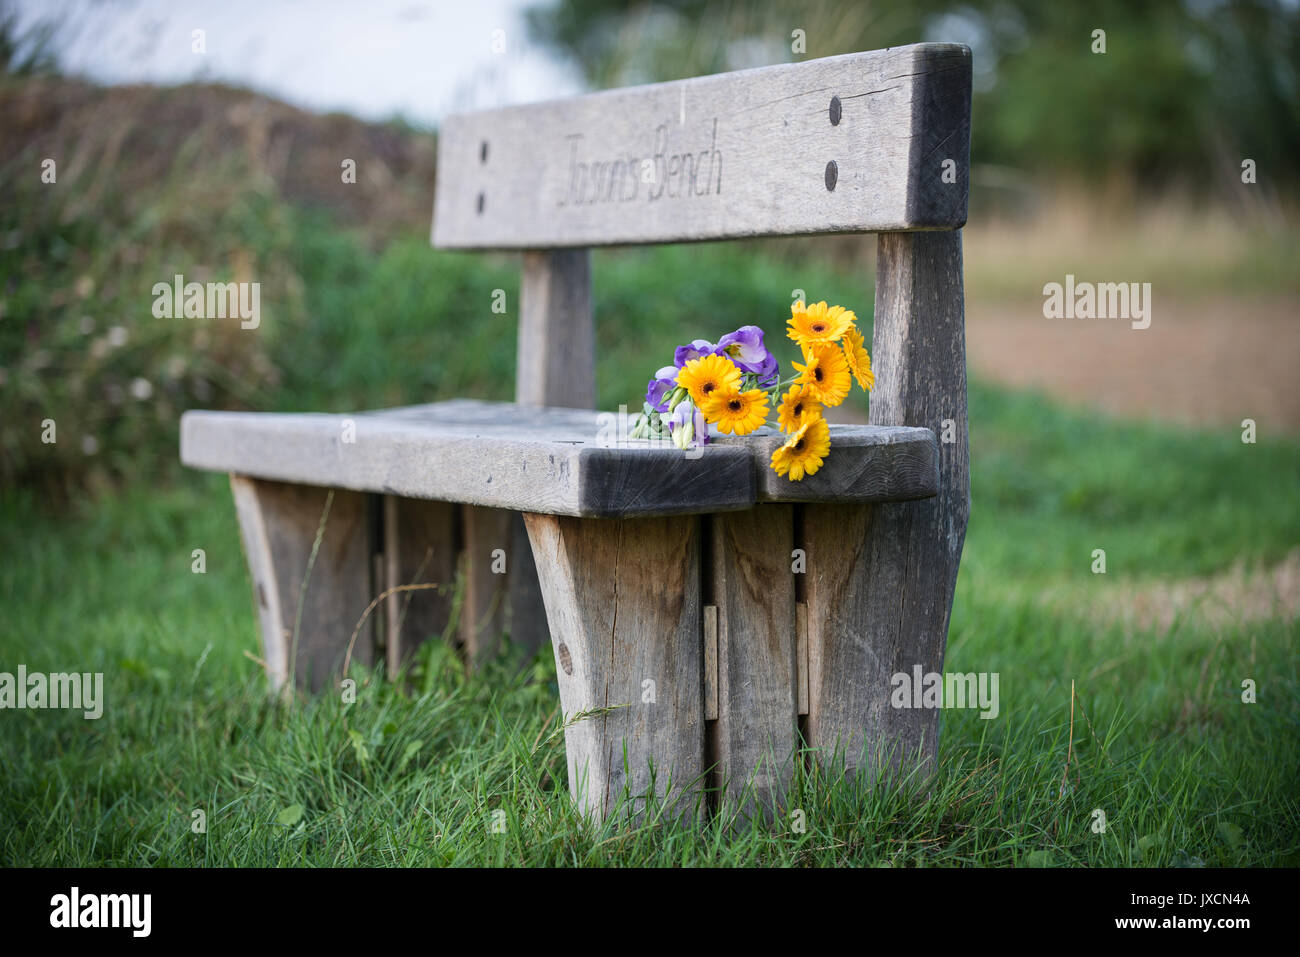 Rustic wooden Memorial bench with flowers at a Natural Burial Ground. Warwickshire, England. United Kingdom. - Stock Image